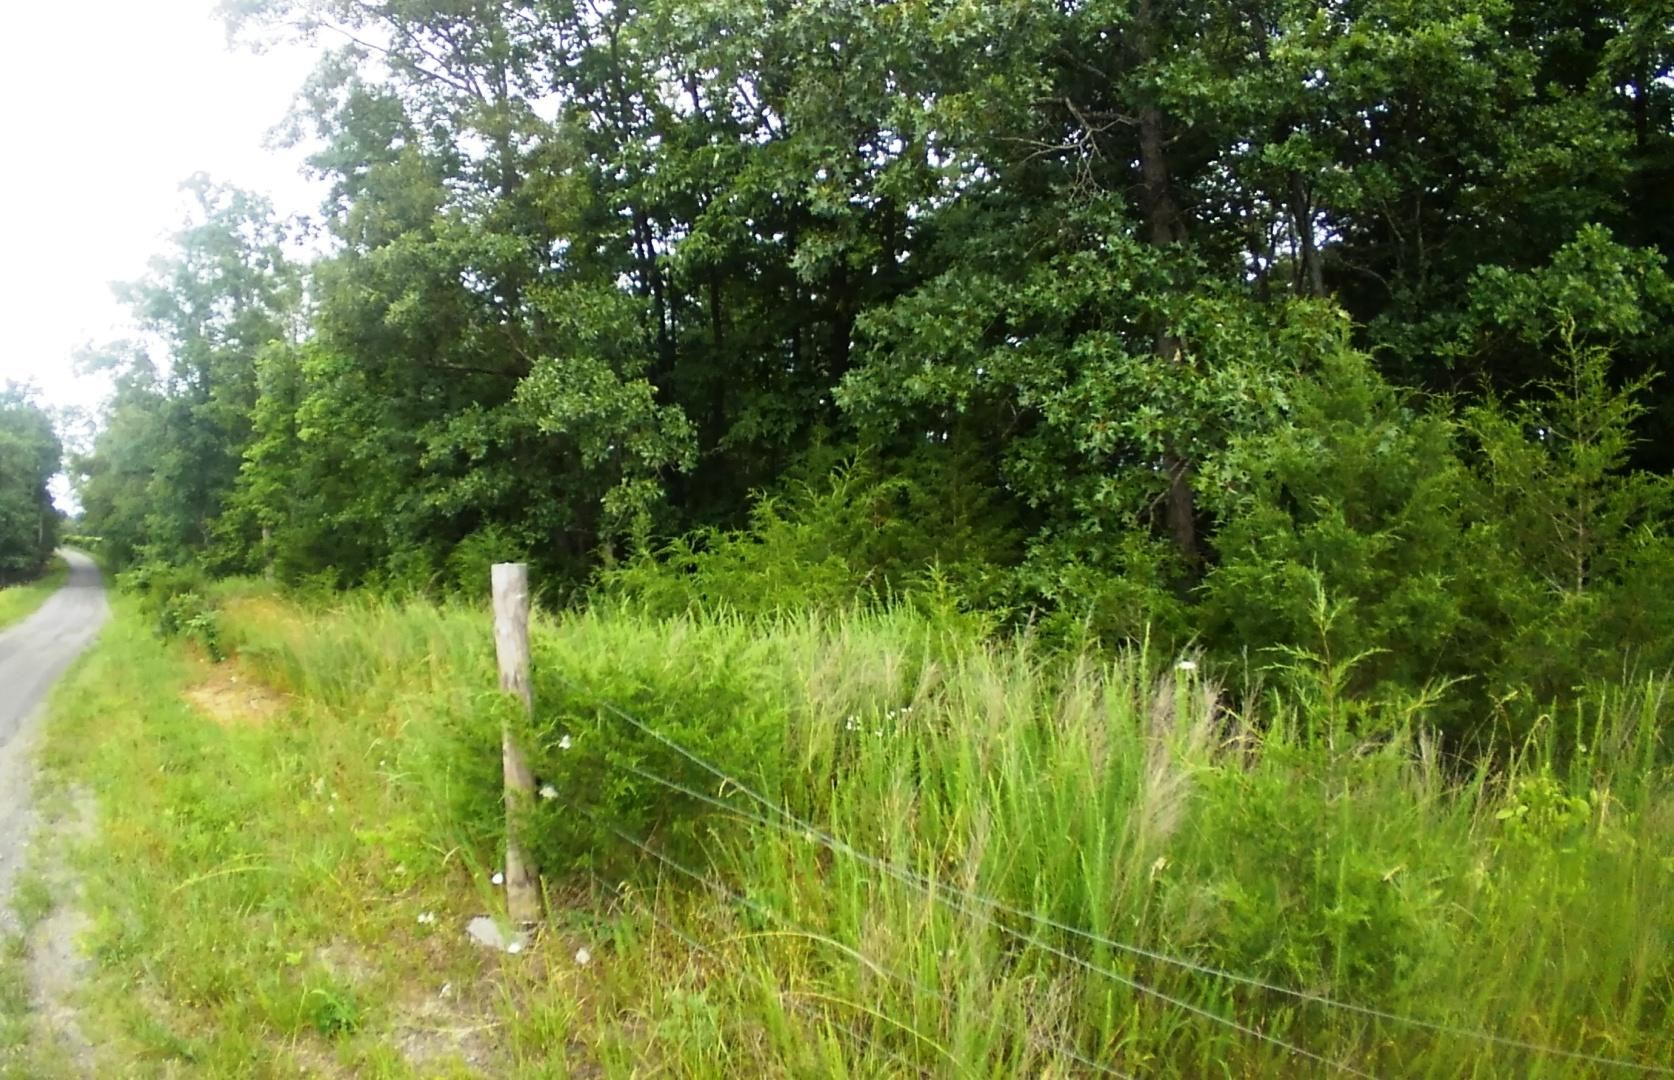 Photo of Lot 6 Smelcer Road, Mohawk, TN 37810 (MLS # 267440)